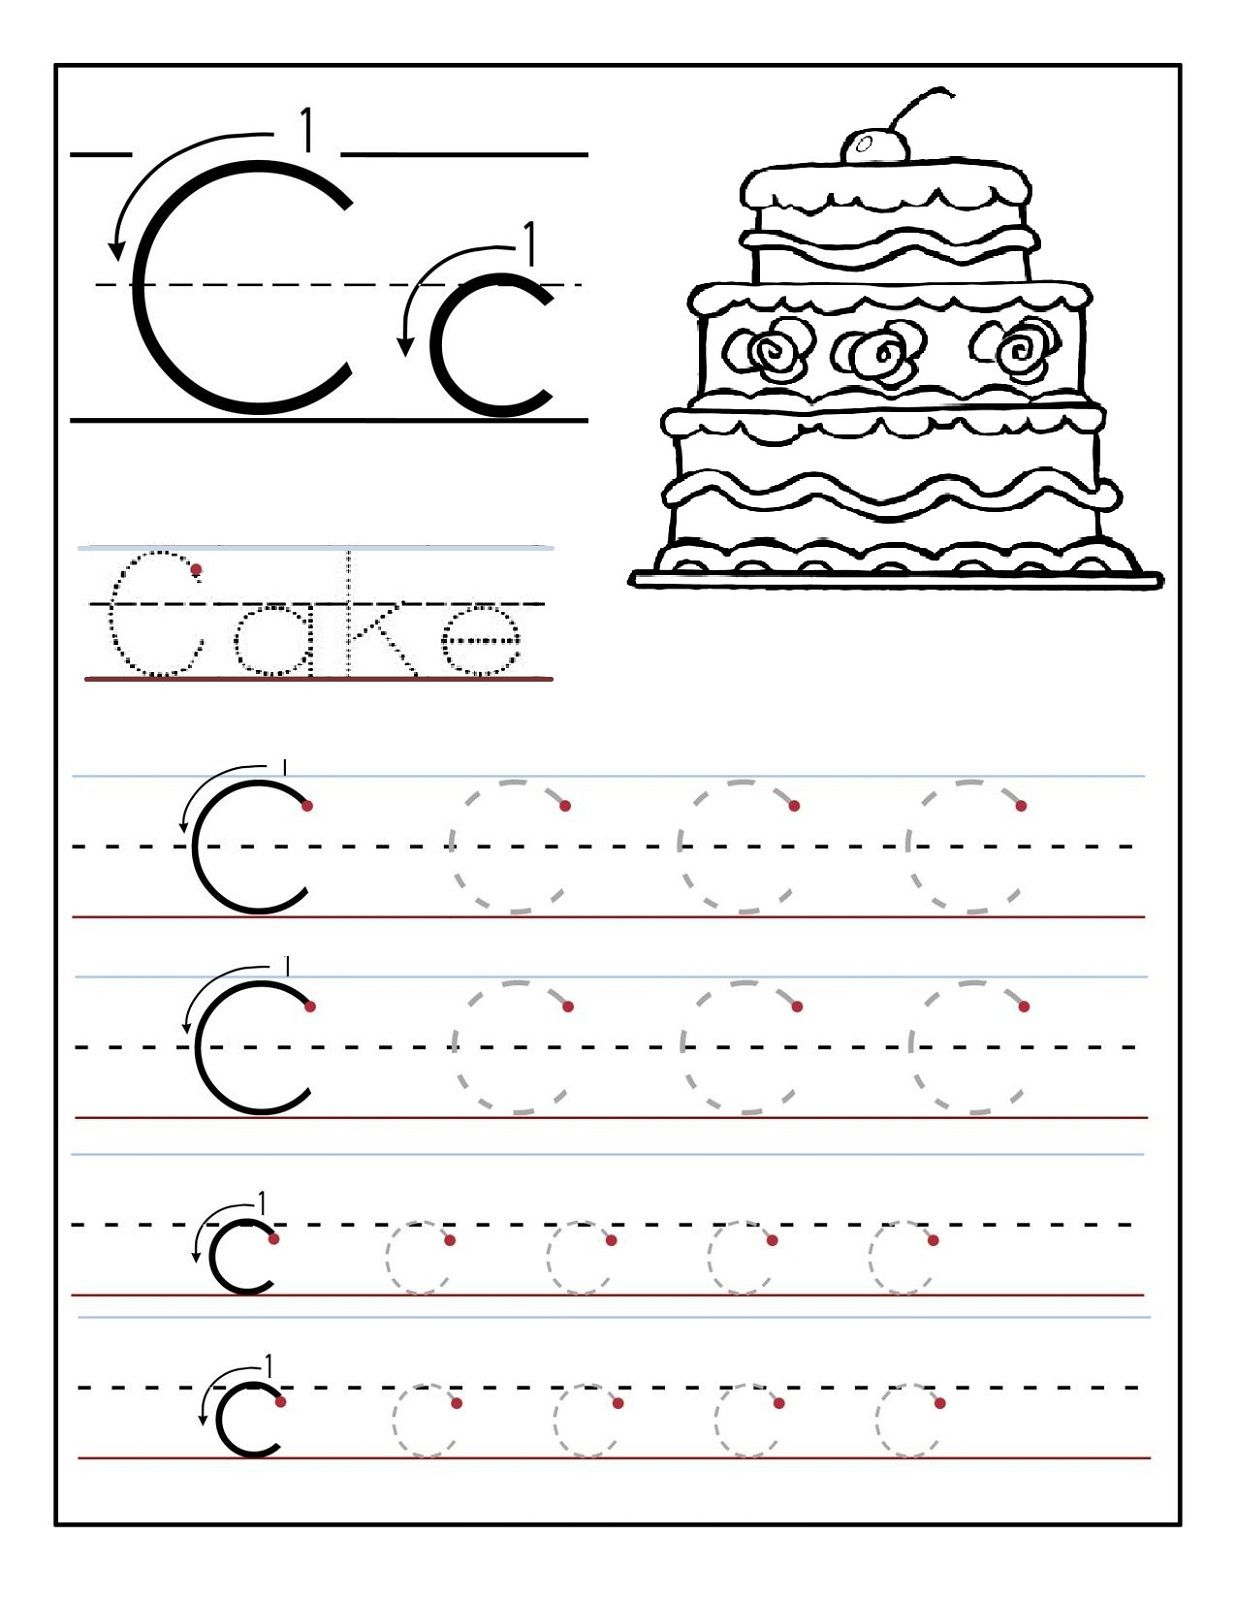 Free Worksheet Letter C Worksheets Preschool trace the letter c worksheets activity shelter kids free printable tracing for preschool educational first graders